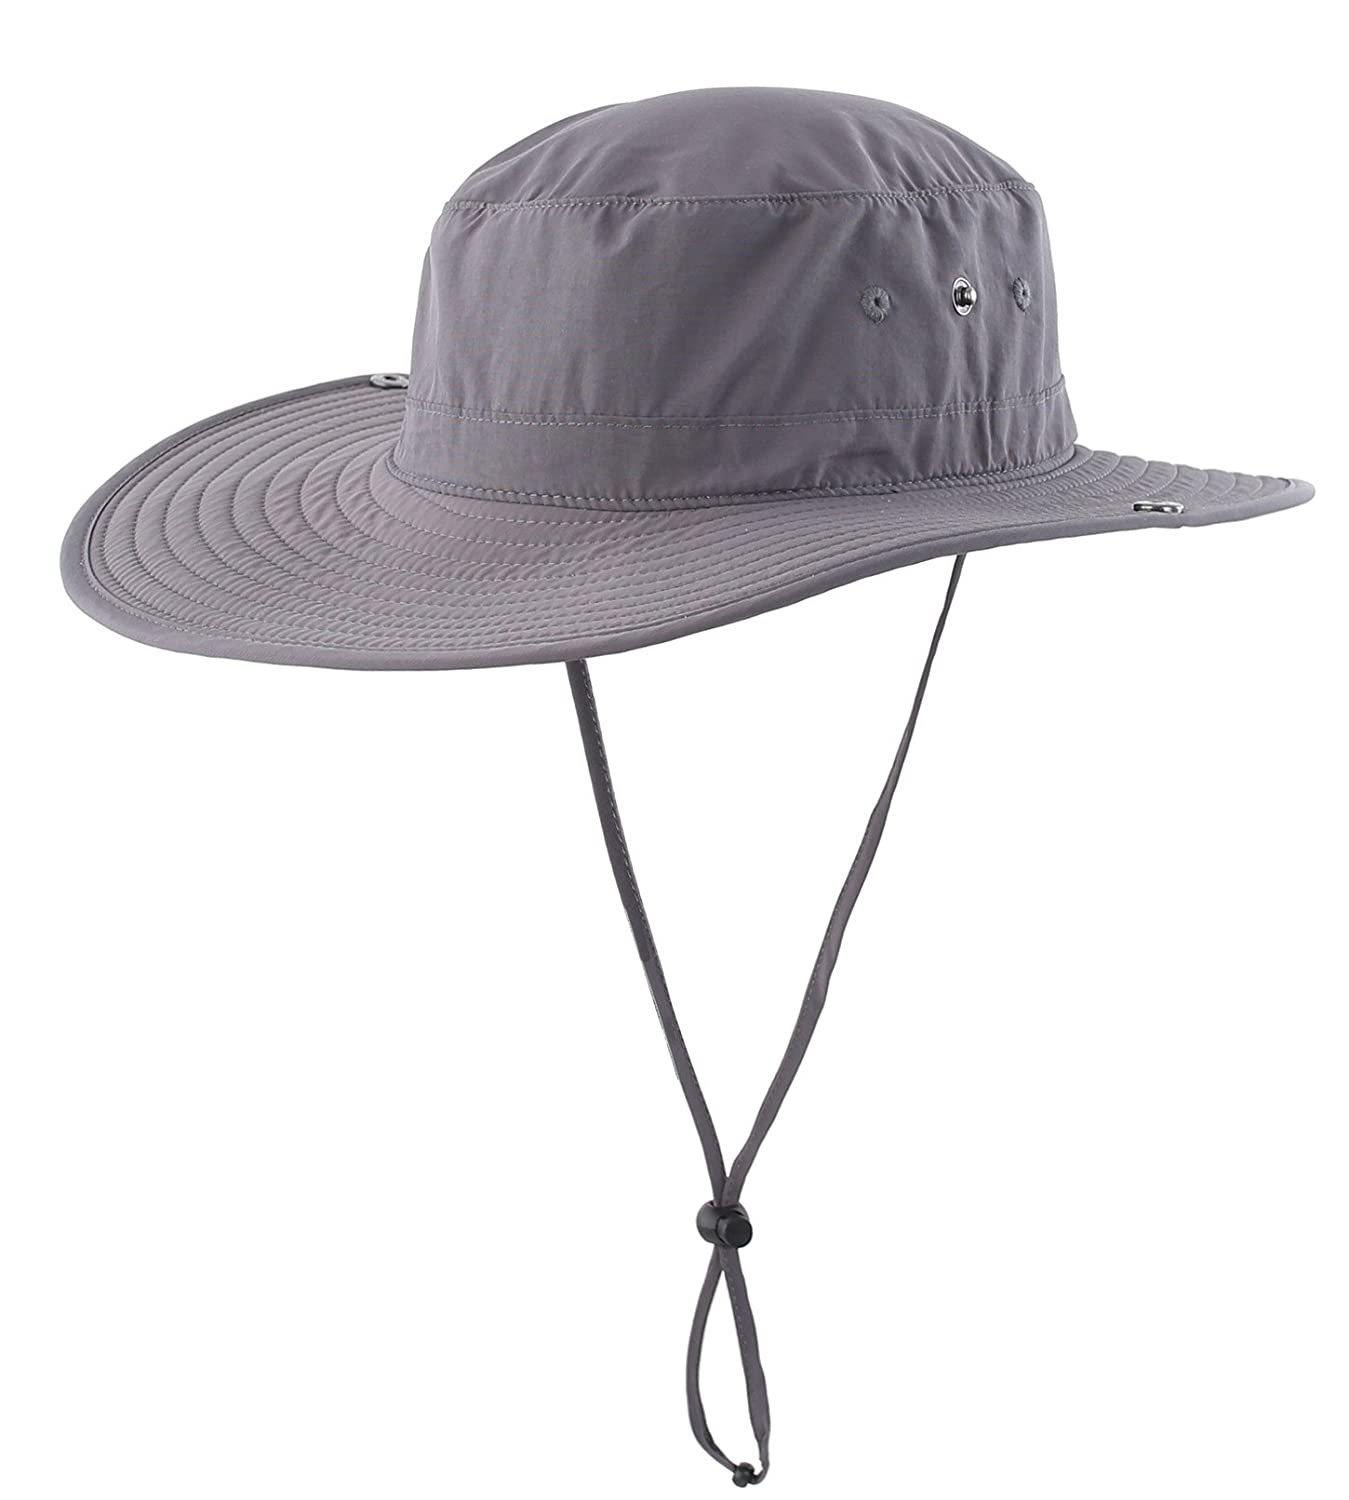 b7ebafb11d2 Amazon.com  Connectyle Unisex Daily Outdoor Cowboy Sun Hat Wide Brim Bucket  Fishing Hats Summer String Hat Cap